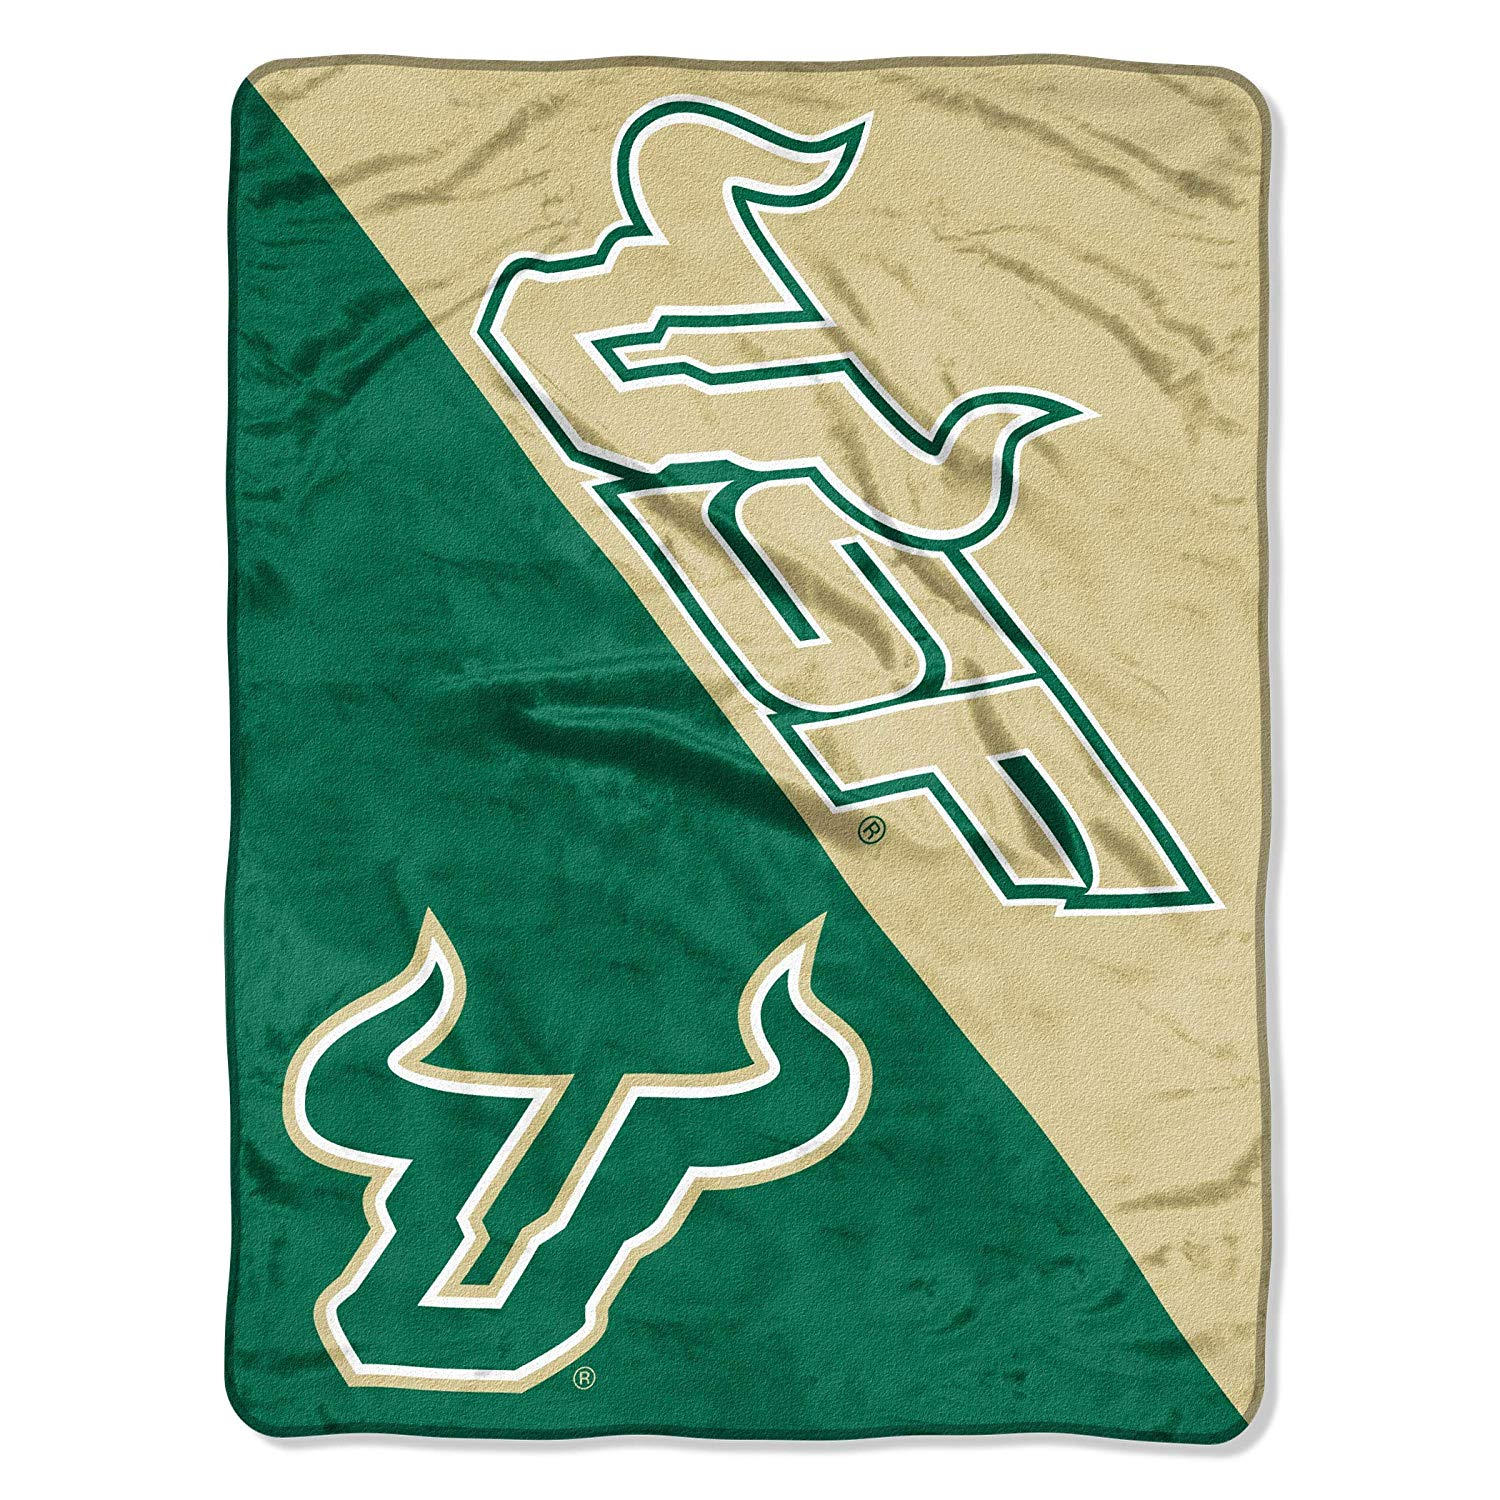 "46""x60"" Green Gold NCAA USF Bulls Micro Raschel Throw Sports Patterned Team Logo Printed Plush Blanket Football Basketball Bedding Athletic Games"